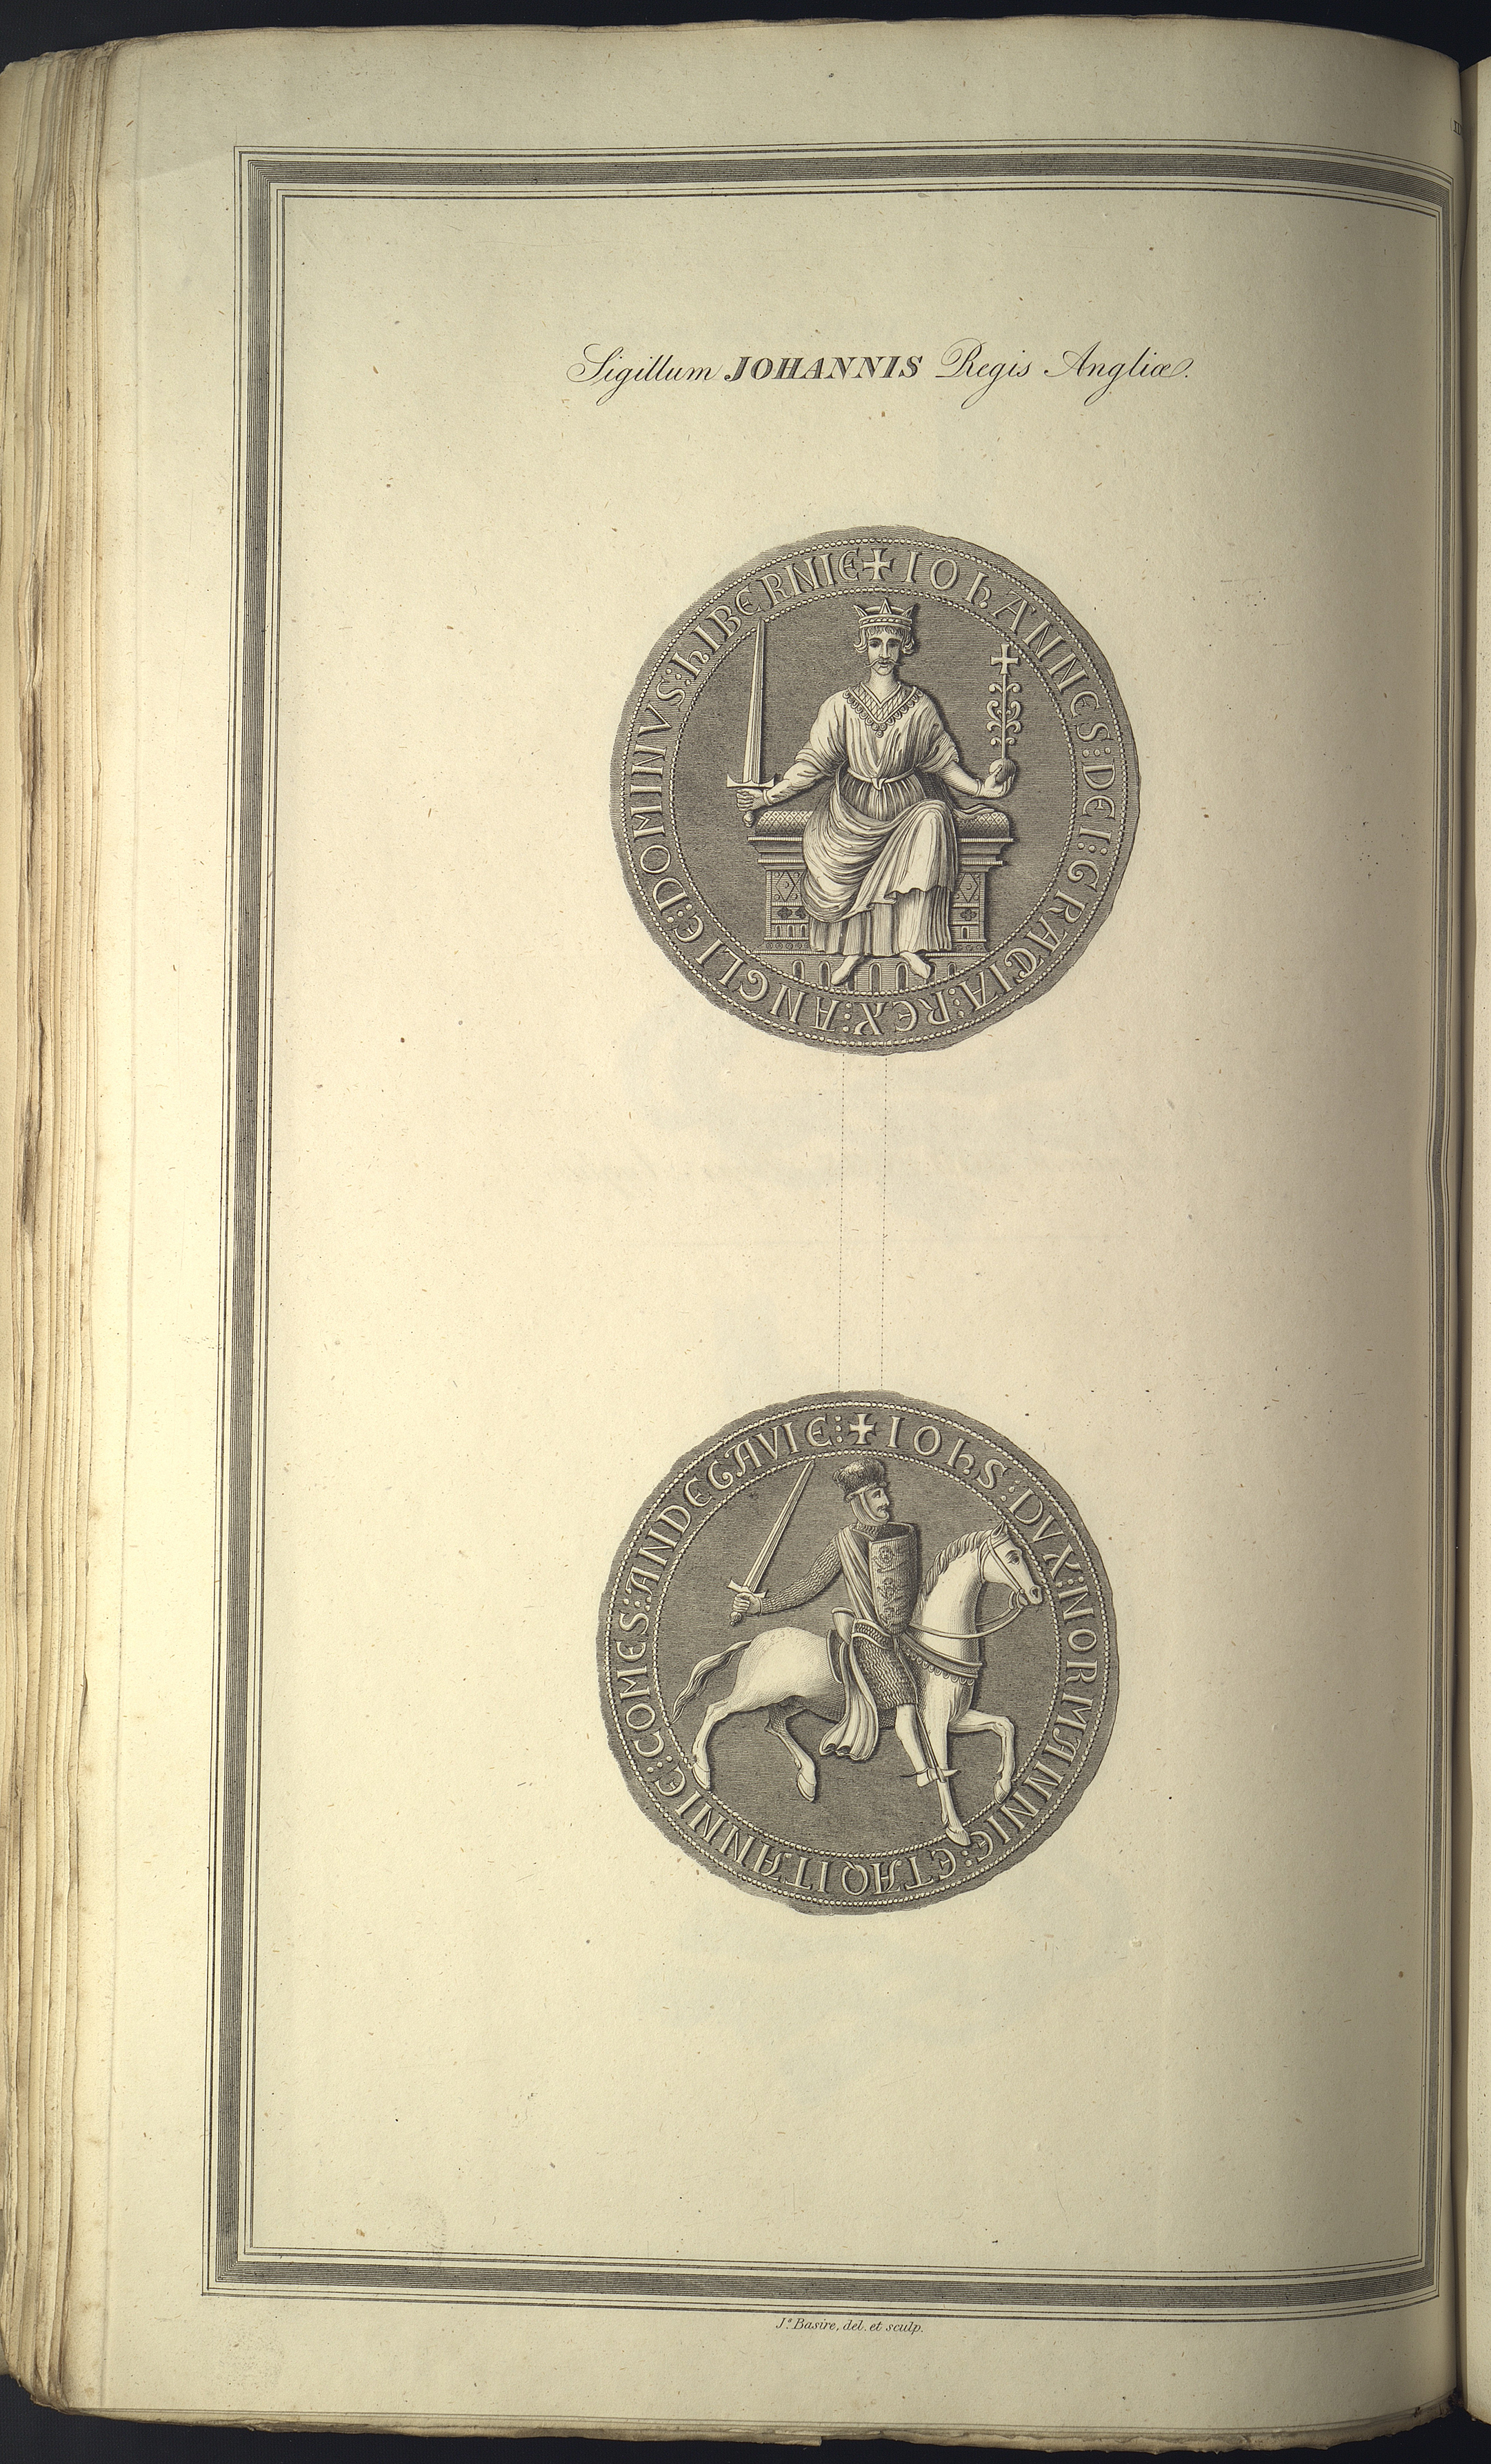 Obverse and Reverse of King John's Seal